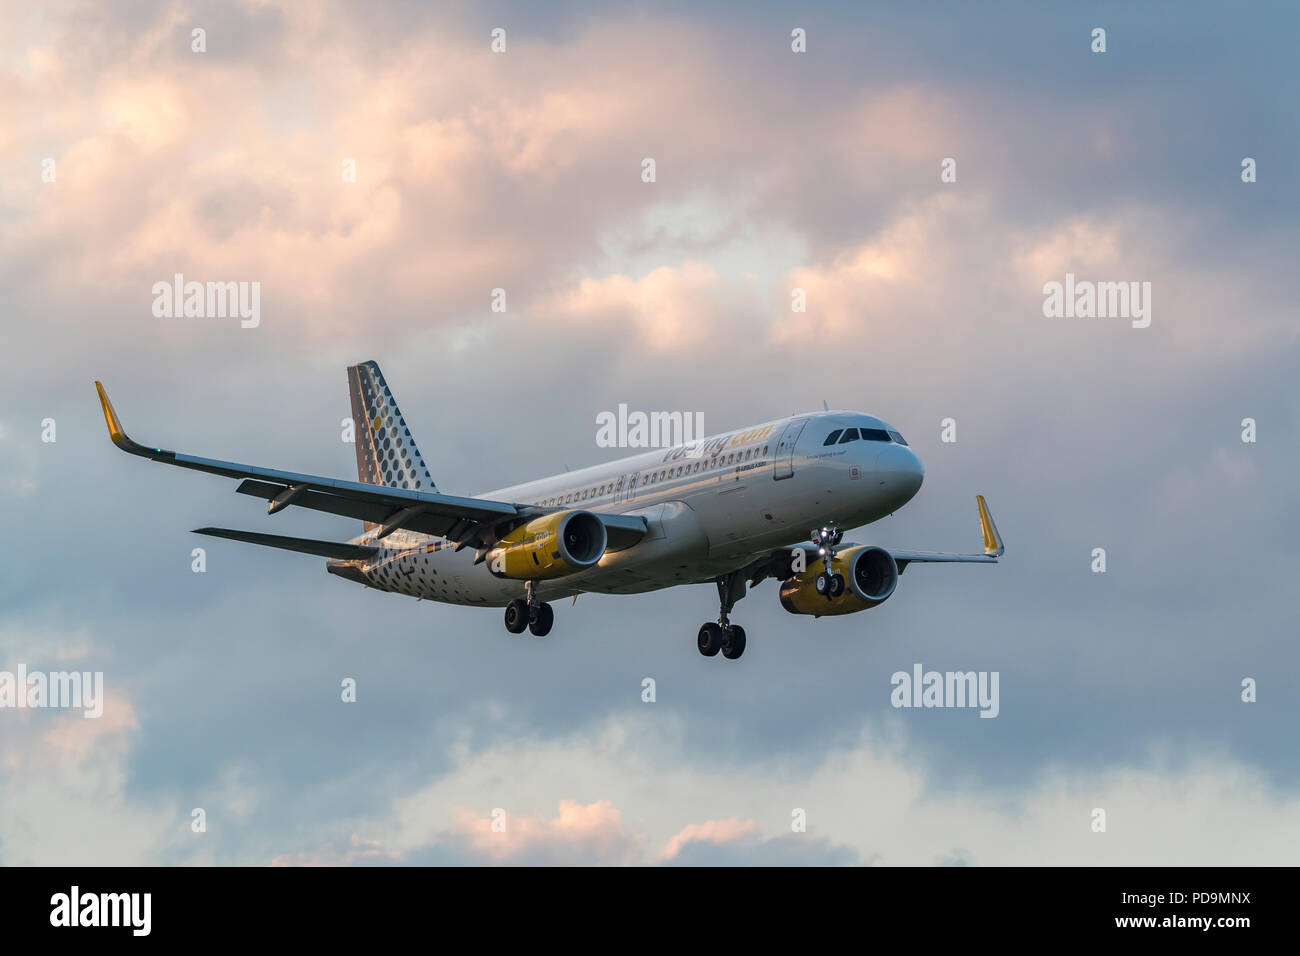 Airbus A320-323 of the airline Vueling during landing approach, cloud sky, Switzerland - Stock Image